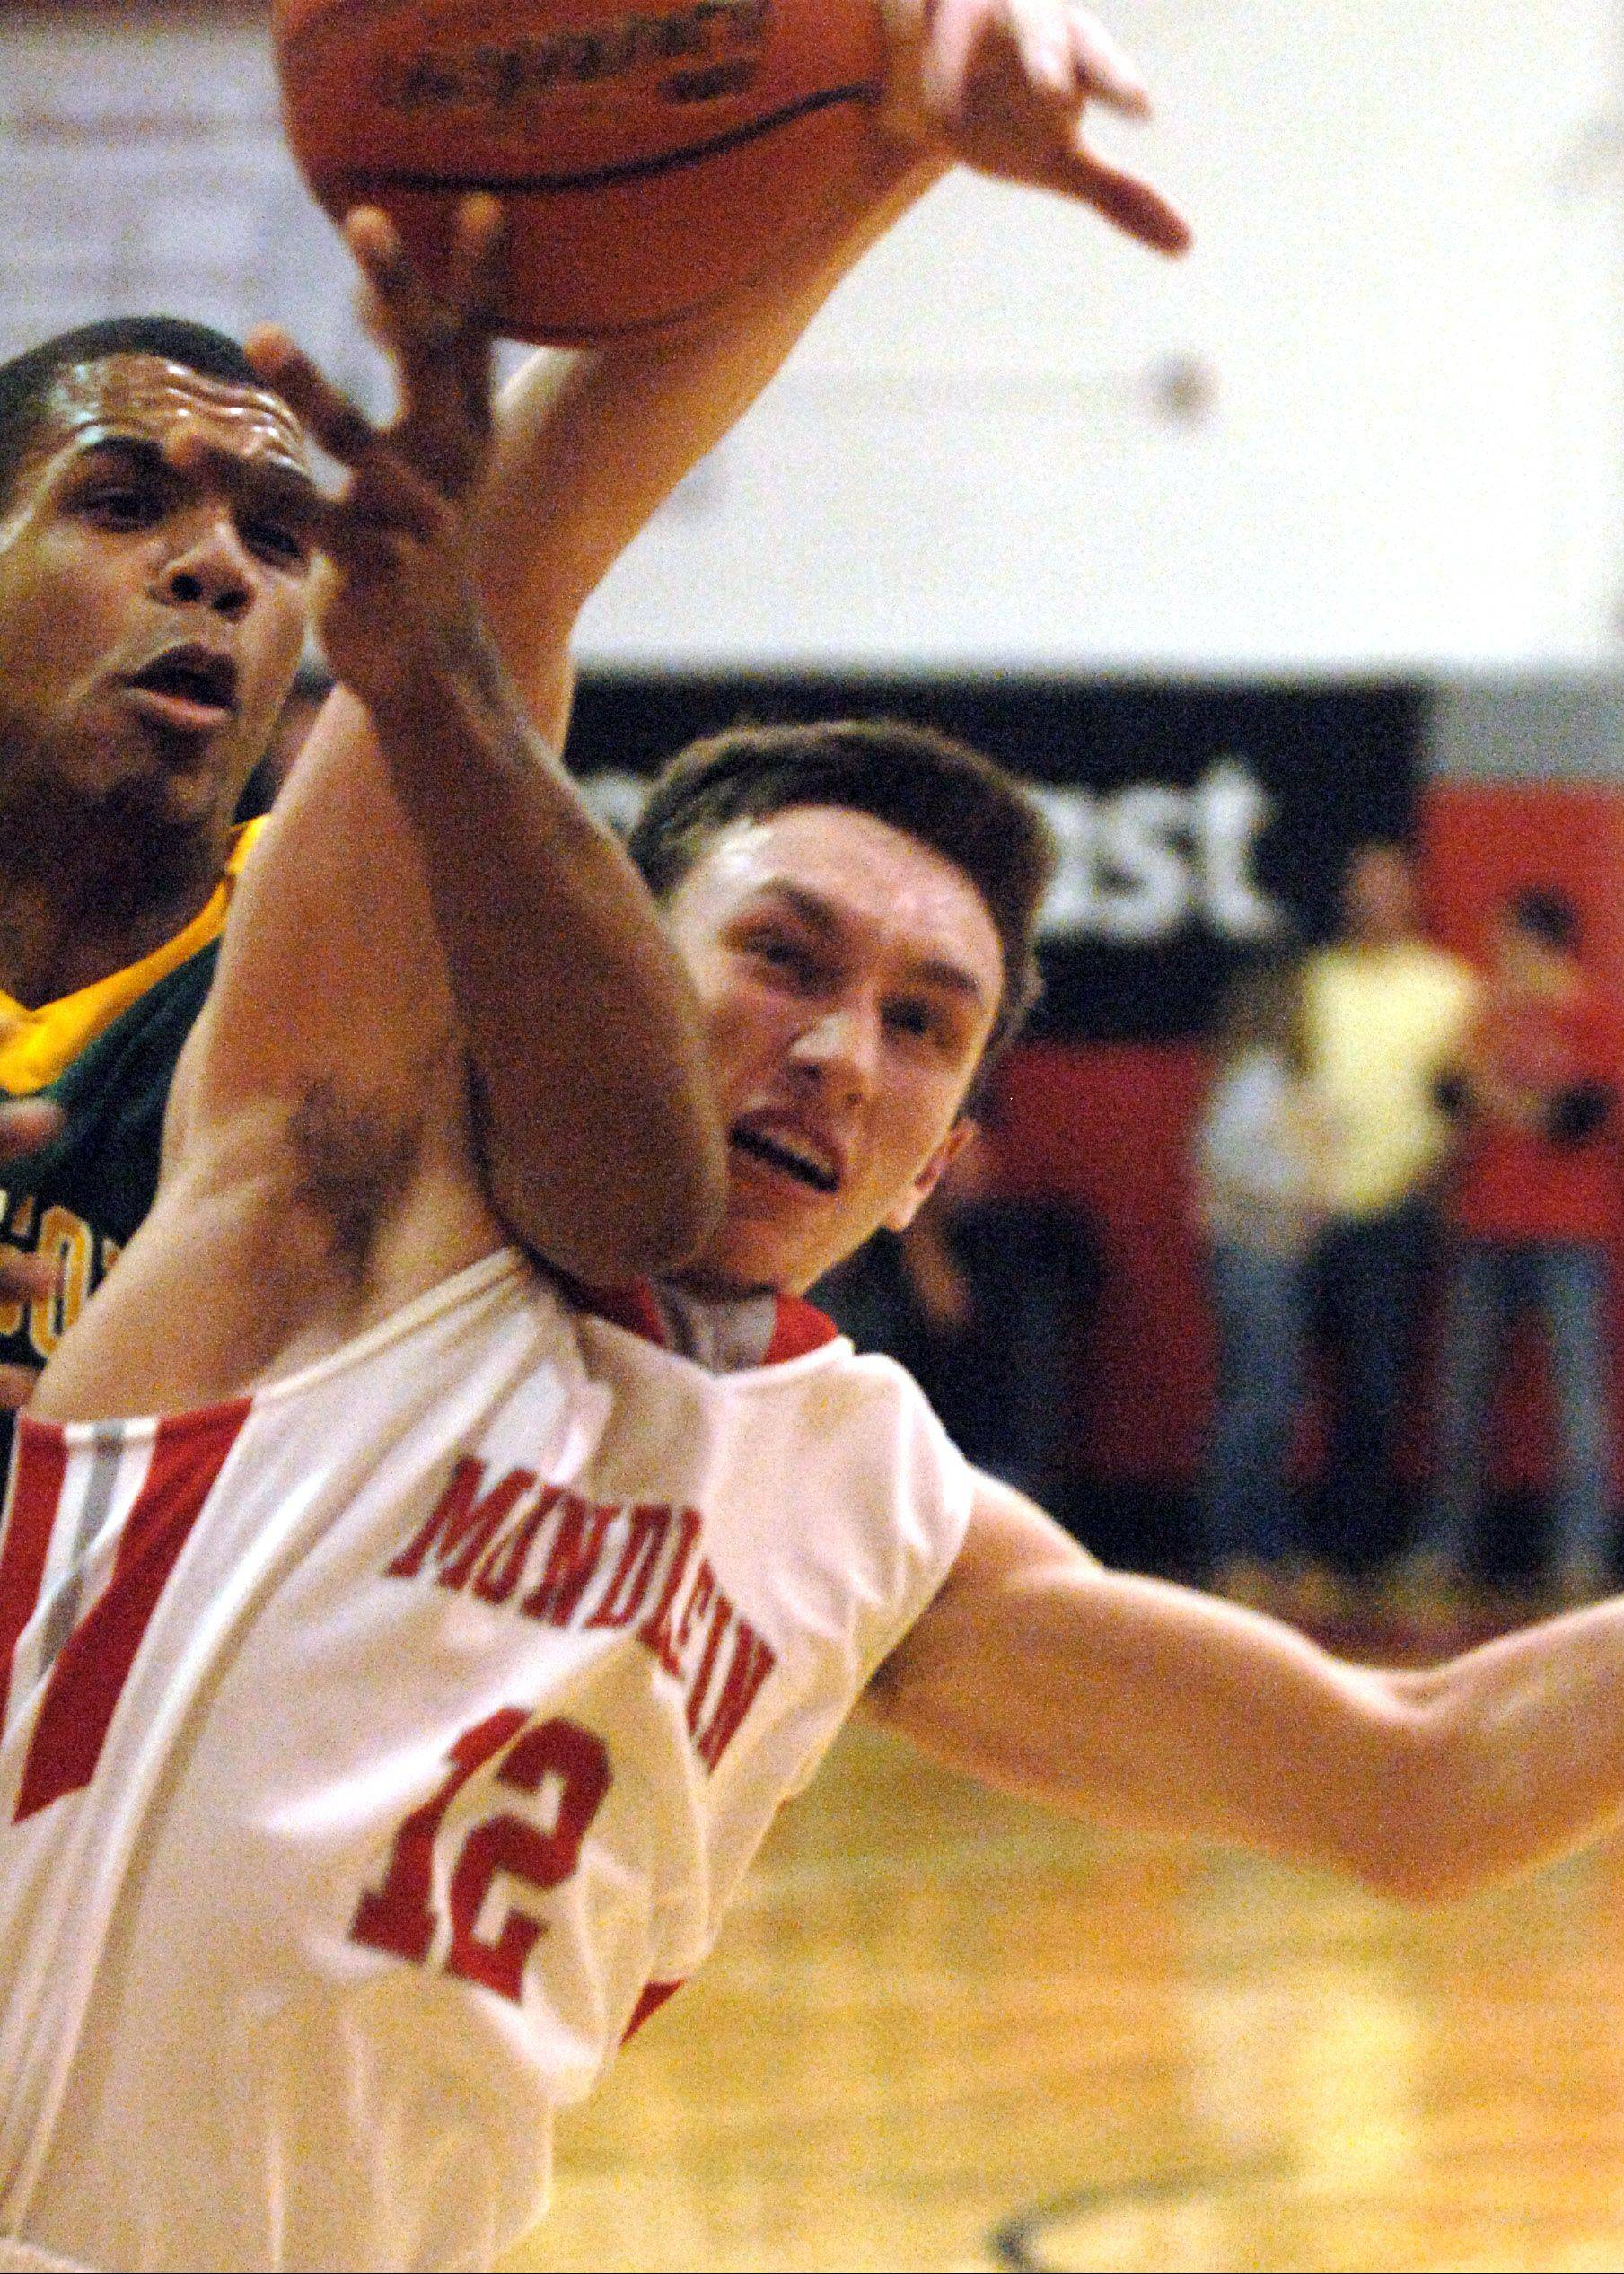 Stevenson's Connor Cashaw, left, and Mundelein's Quinn Pokora fight for a rebound Friday night in Mundelein.